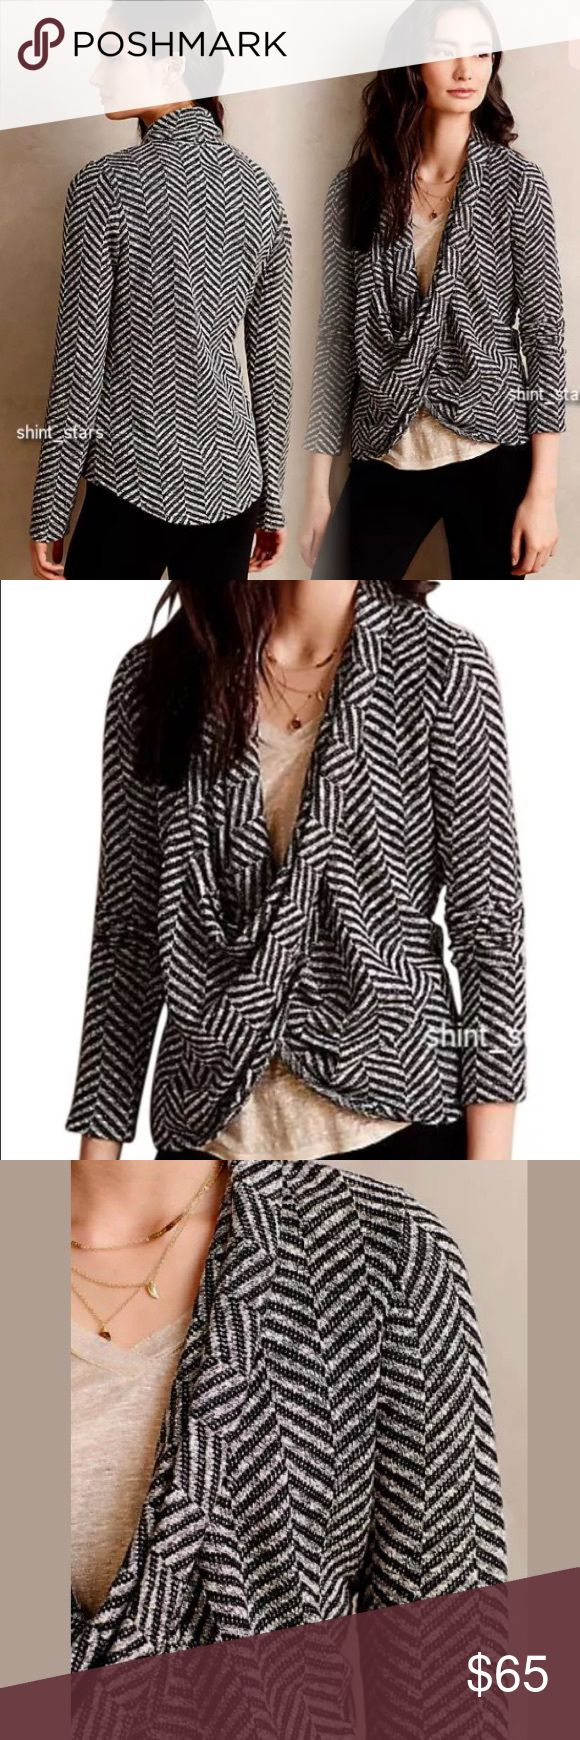 Anthropologie Dolan Crossover Chevron Top This top is gorgeous and so versatile! Great condition Anthropologie Tops